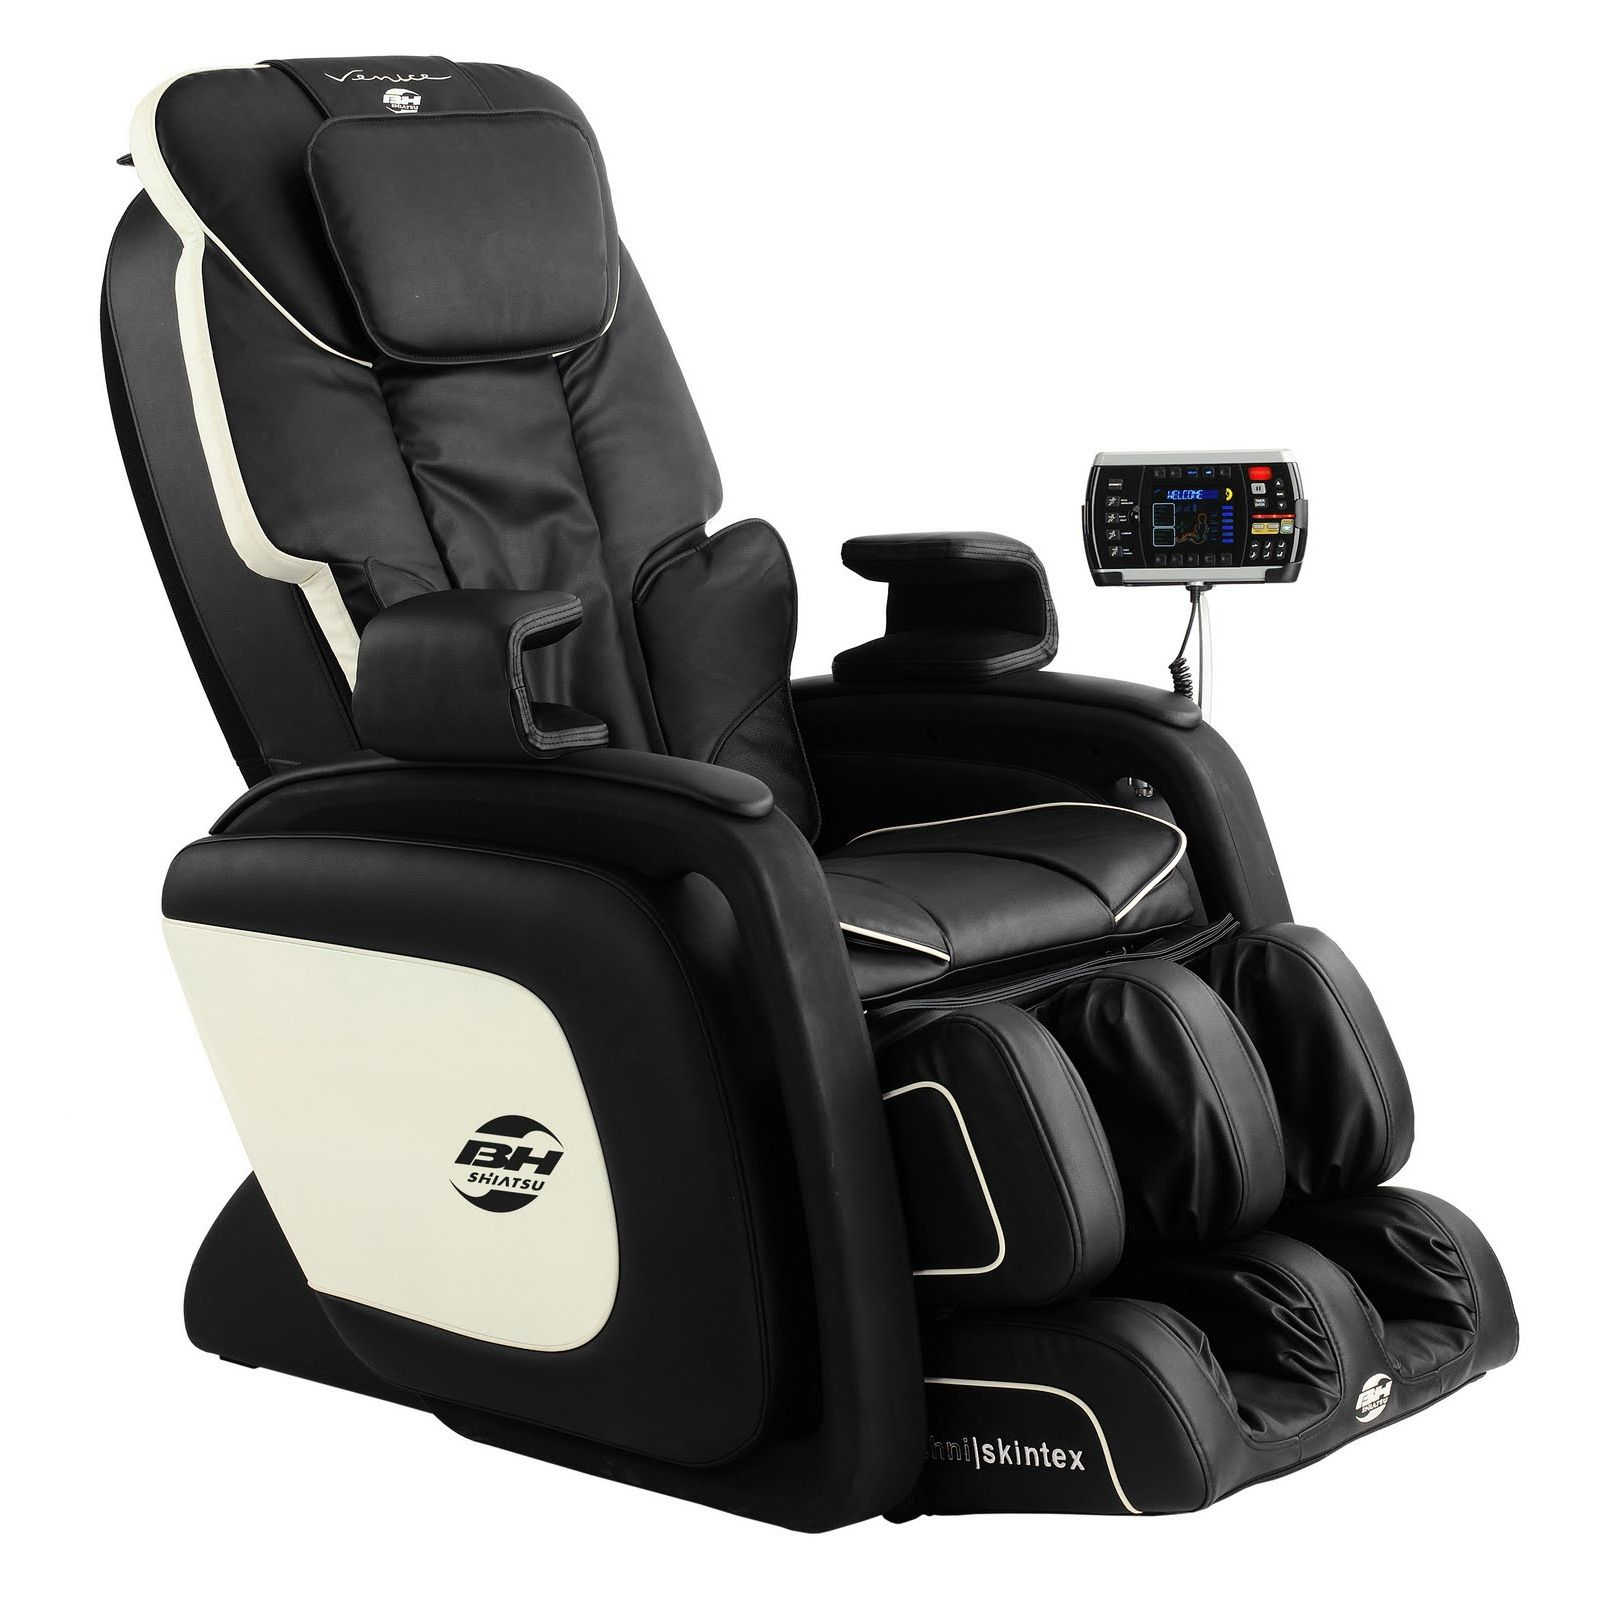 BH Shiatsu M650 Venice Massage Chair